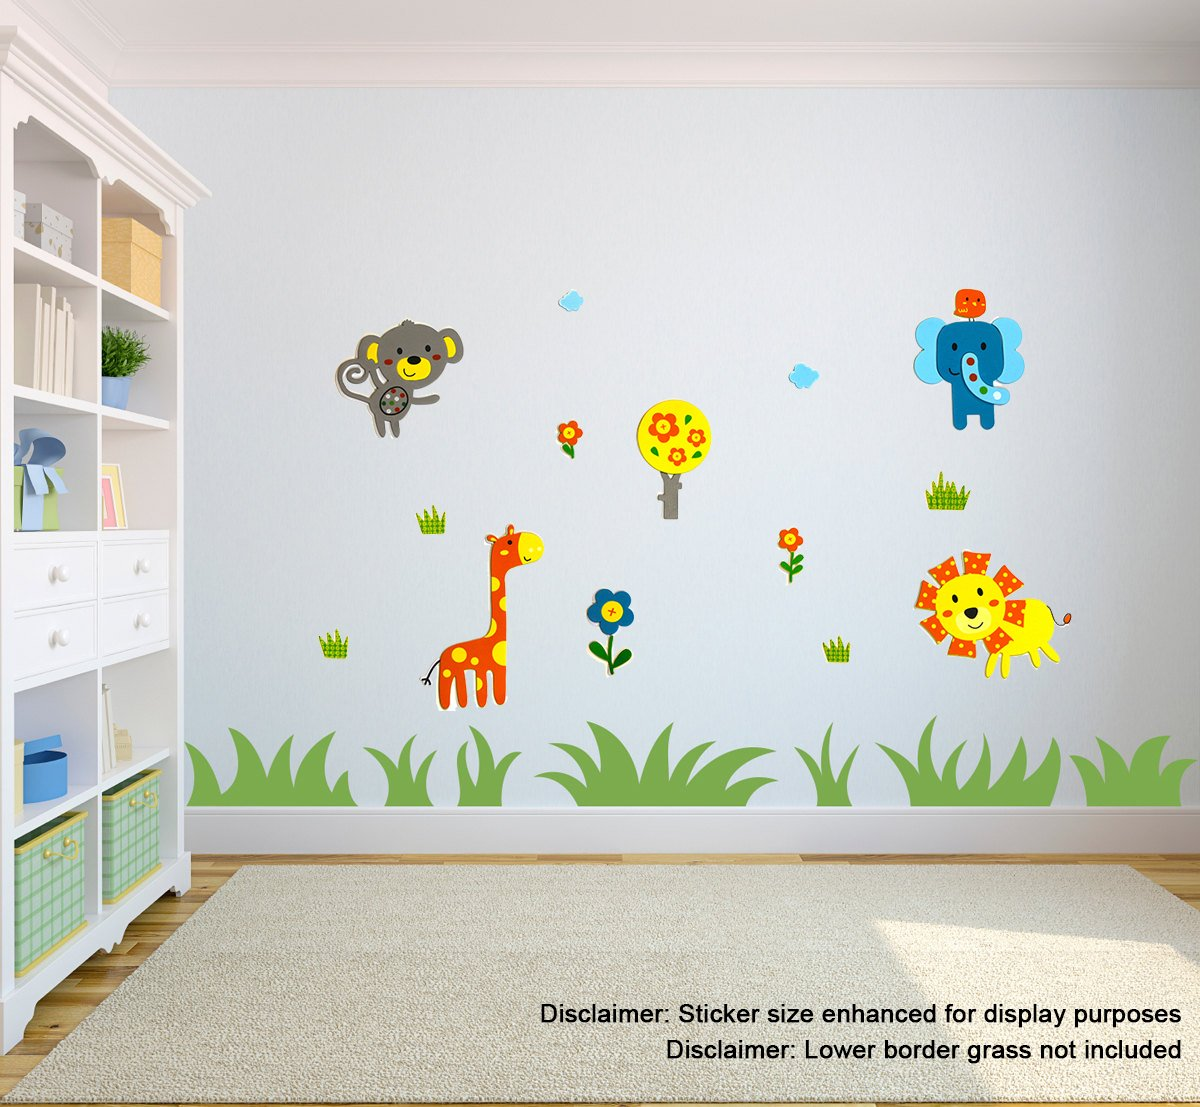 14 Premium 3D Wall Decals - Safari Animals 1 - Eco-Friendly - Reusable - Long Lasting - Easy Stick - Colorful - Foam Stickers - Kids Room Decals - Educational Sticker Decals - Nursery Baby Decor